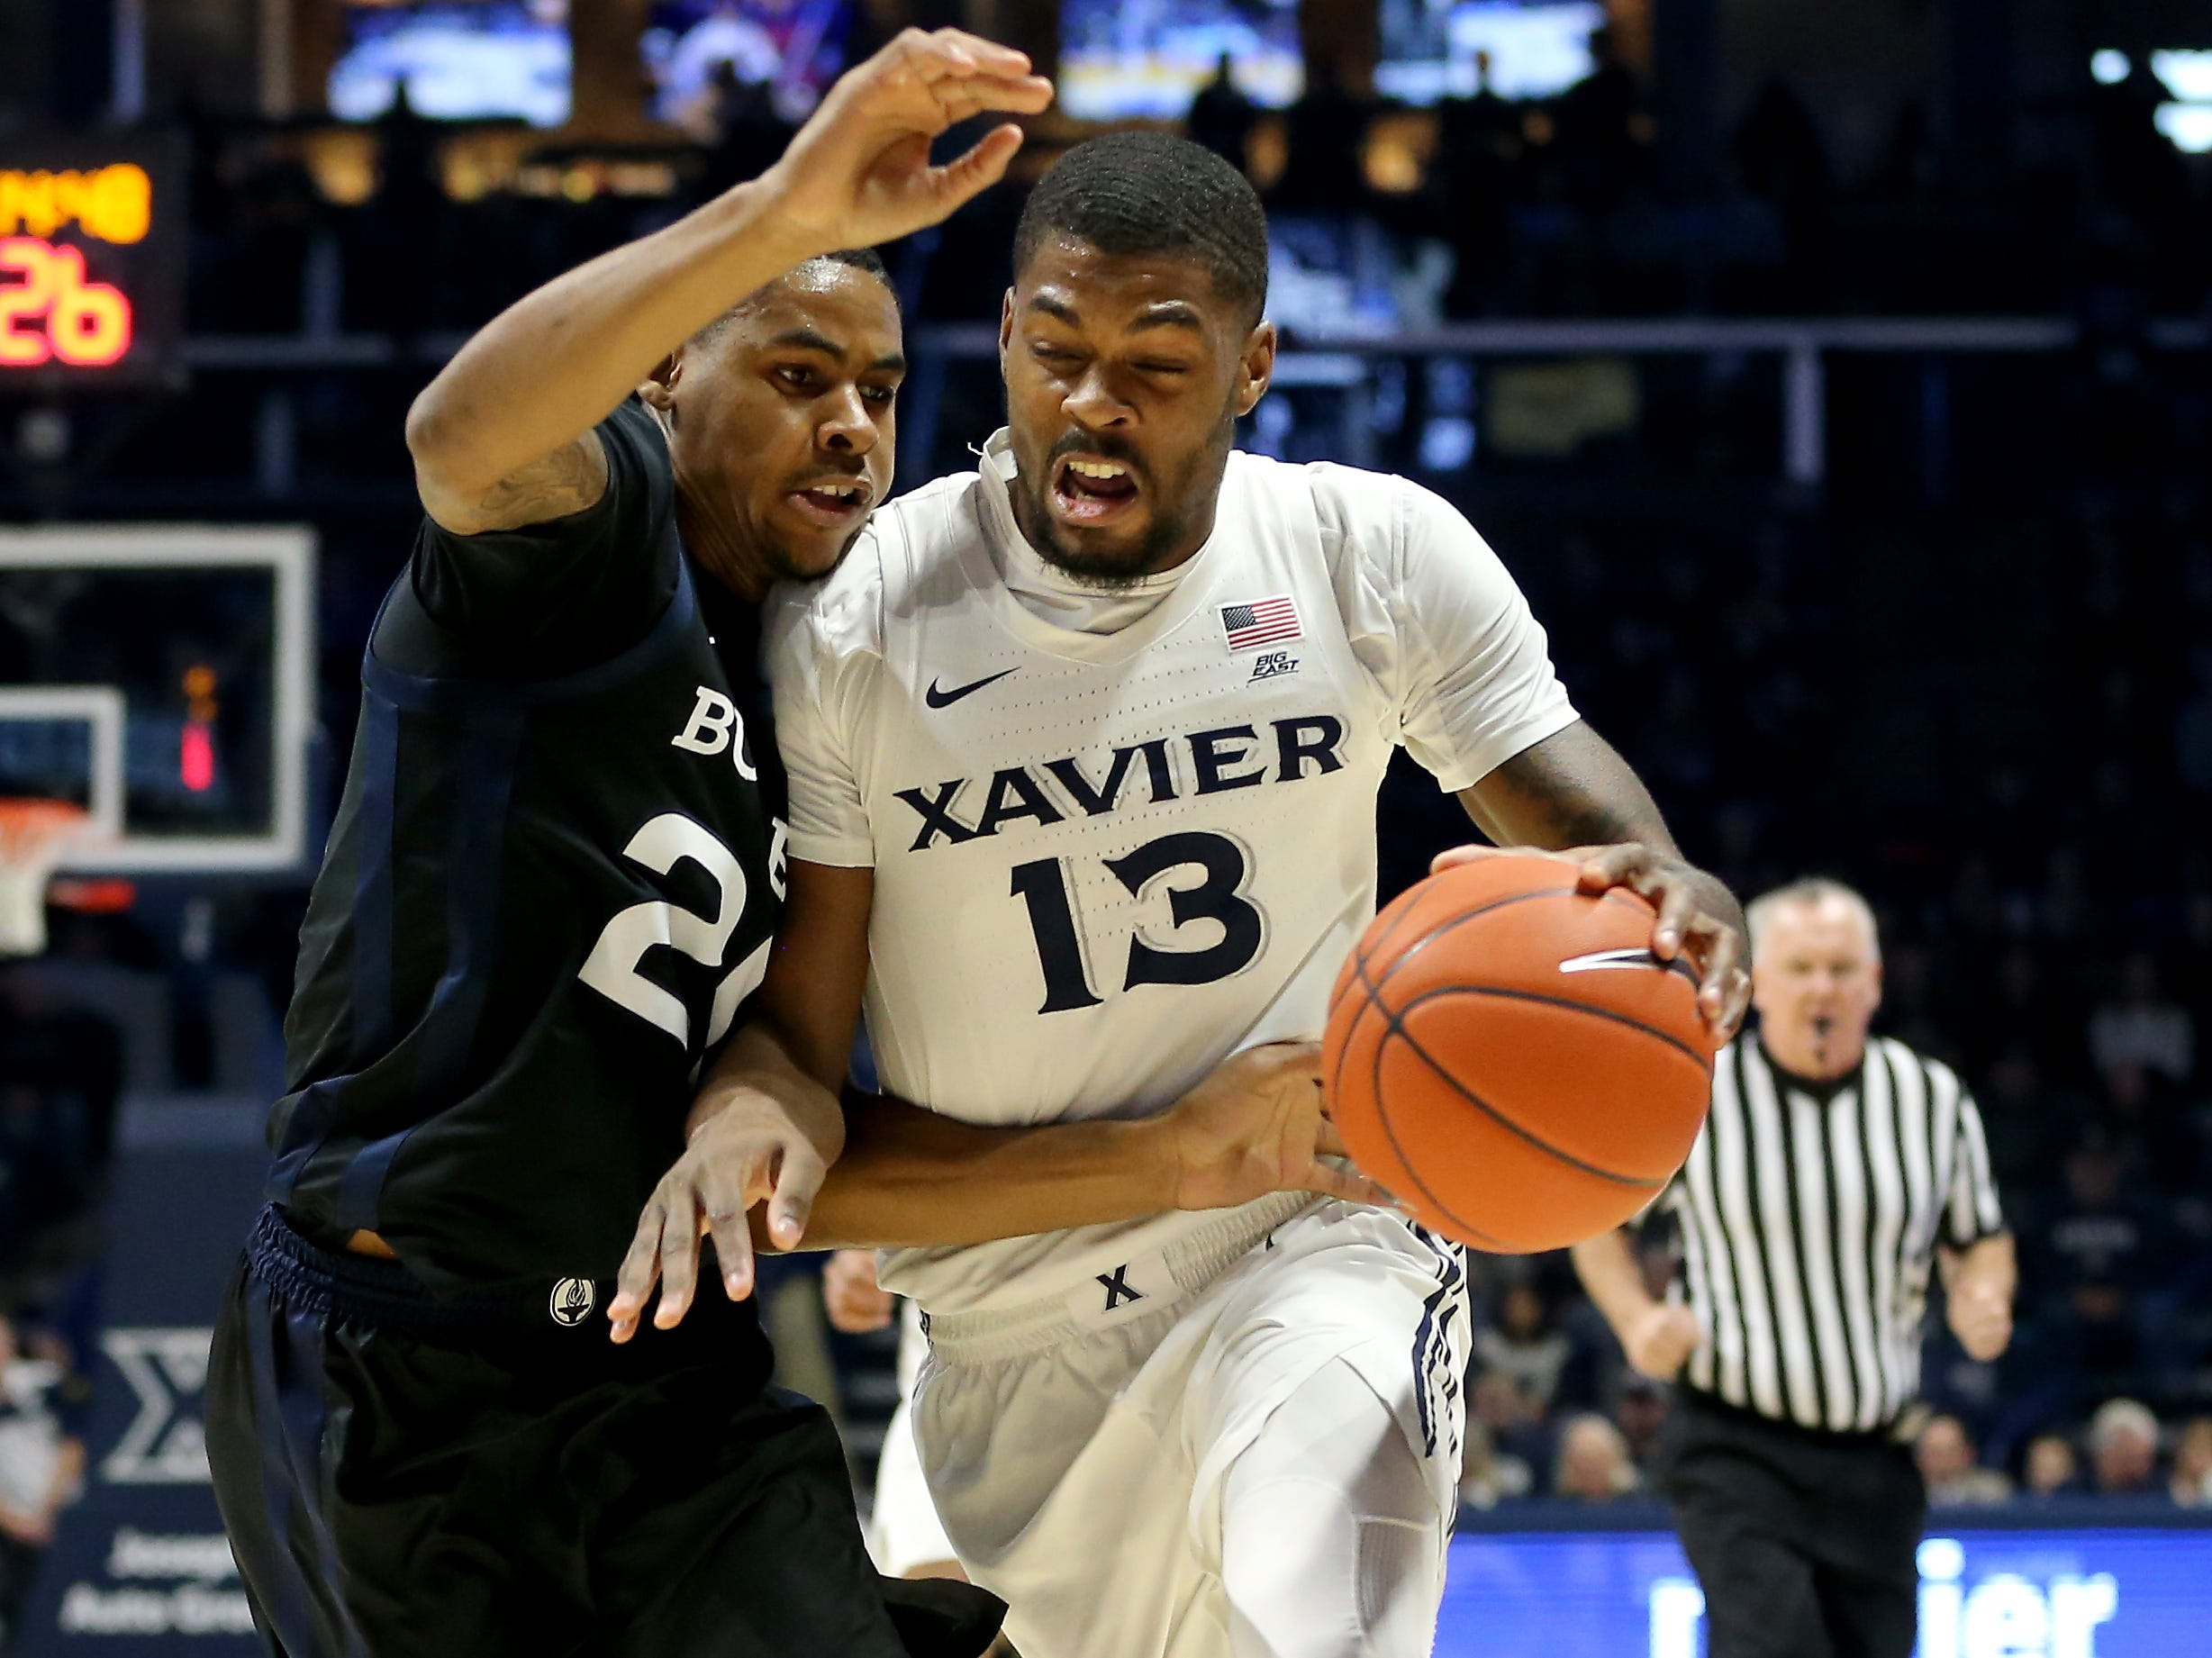 Xavier Musketeers forward Naji Marshall (13) drives to the basket as Butler Bulldogs forward Henry Baddley (20) defends in the first half of an NCAA college basketball game, Sunday, Jan. 13, 2019, at Cintas Center in Cincinnati.